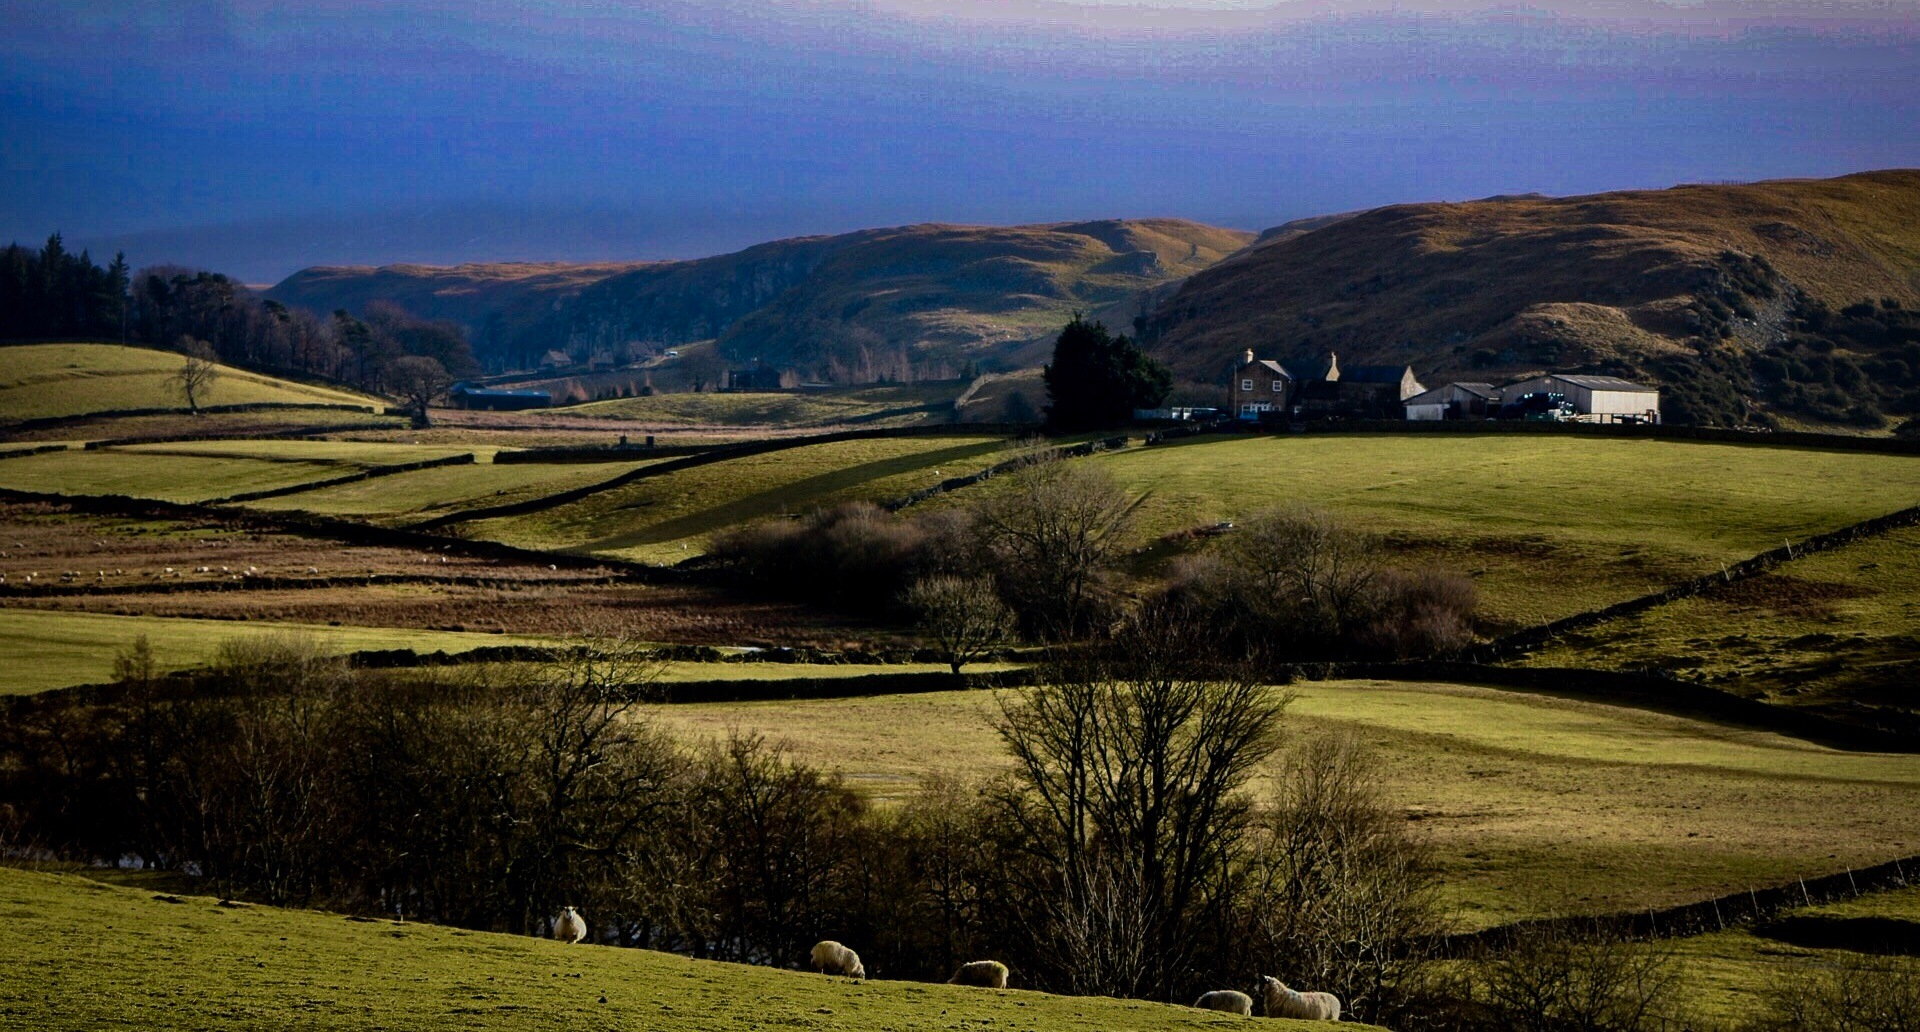 The Cumbrian Countryside by Steve Swan